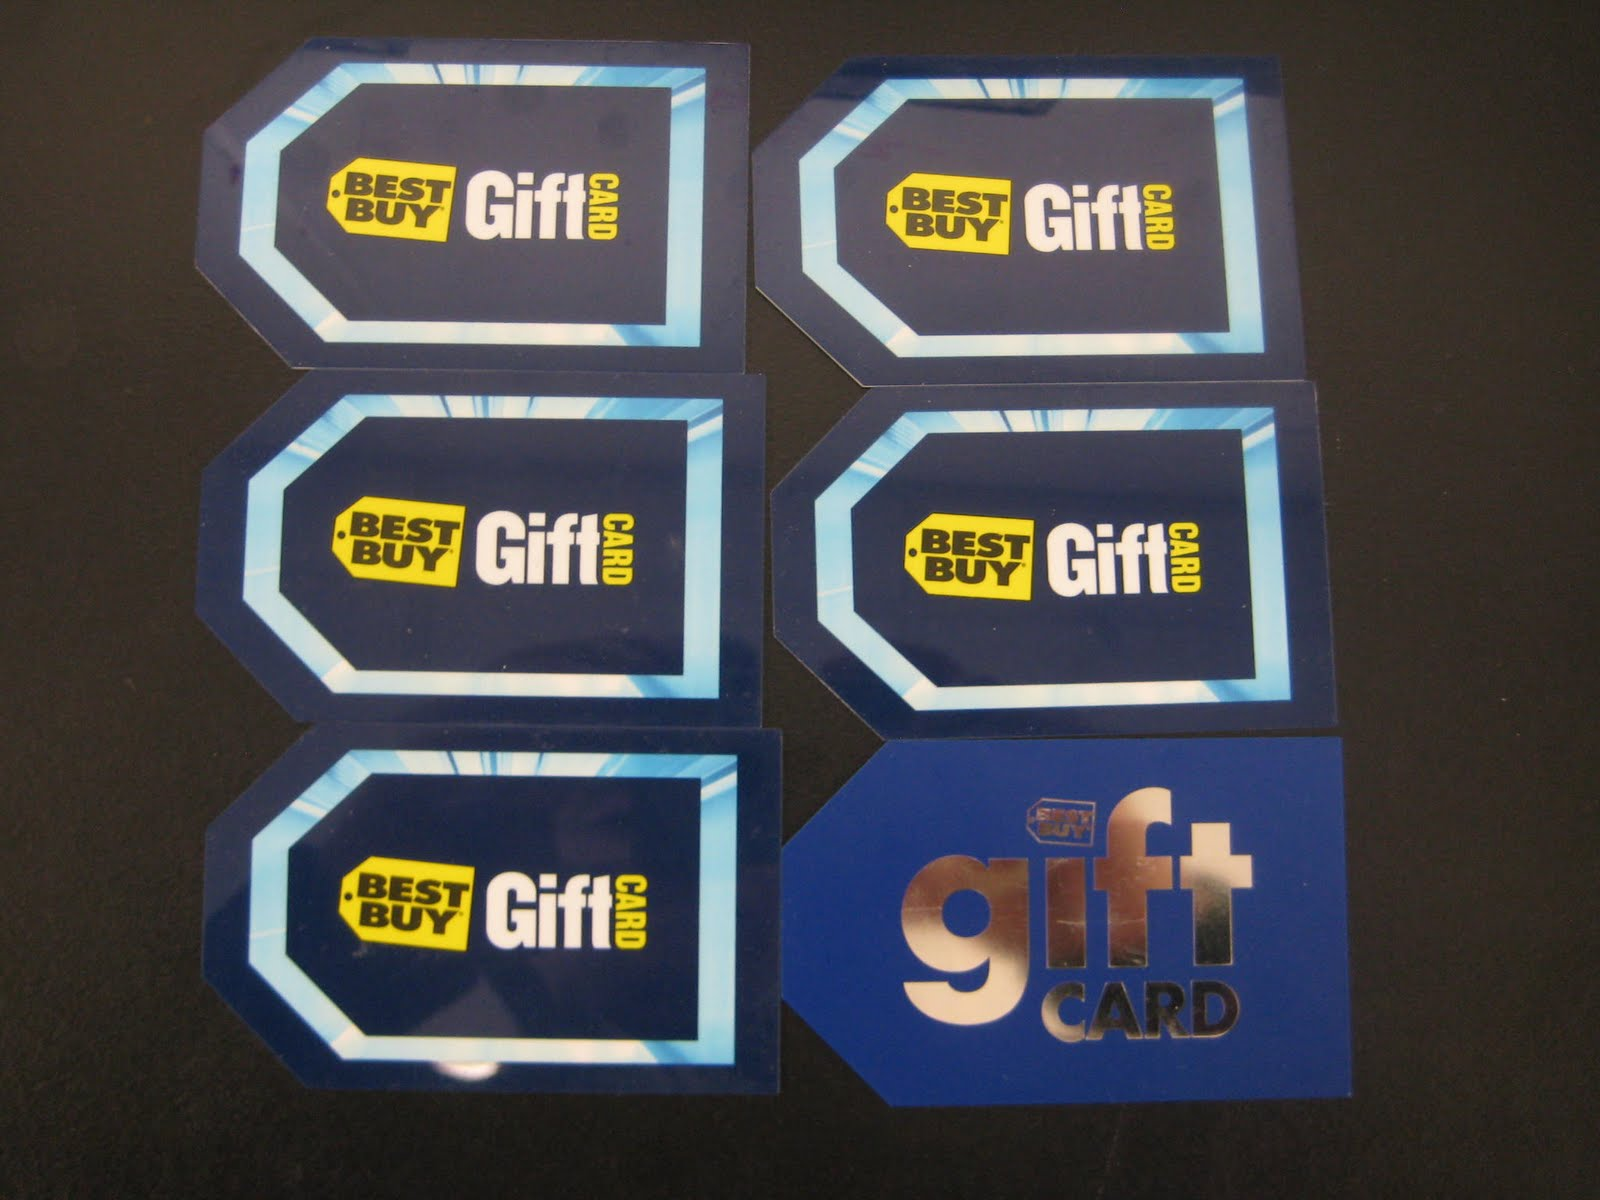 best gift cards to buy for christmas